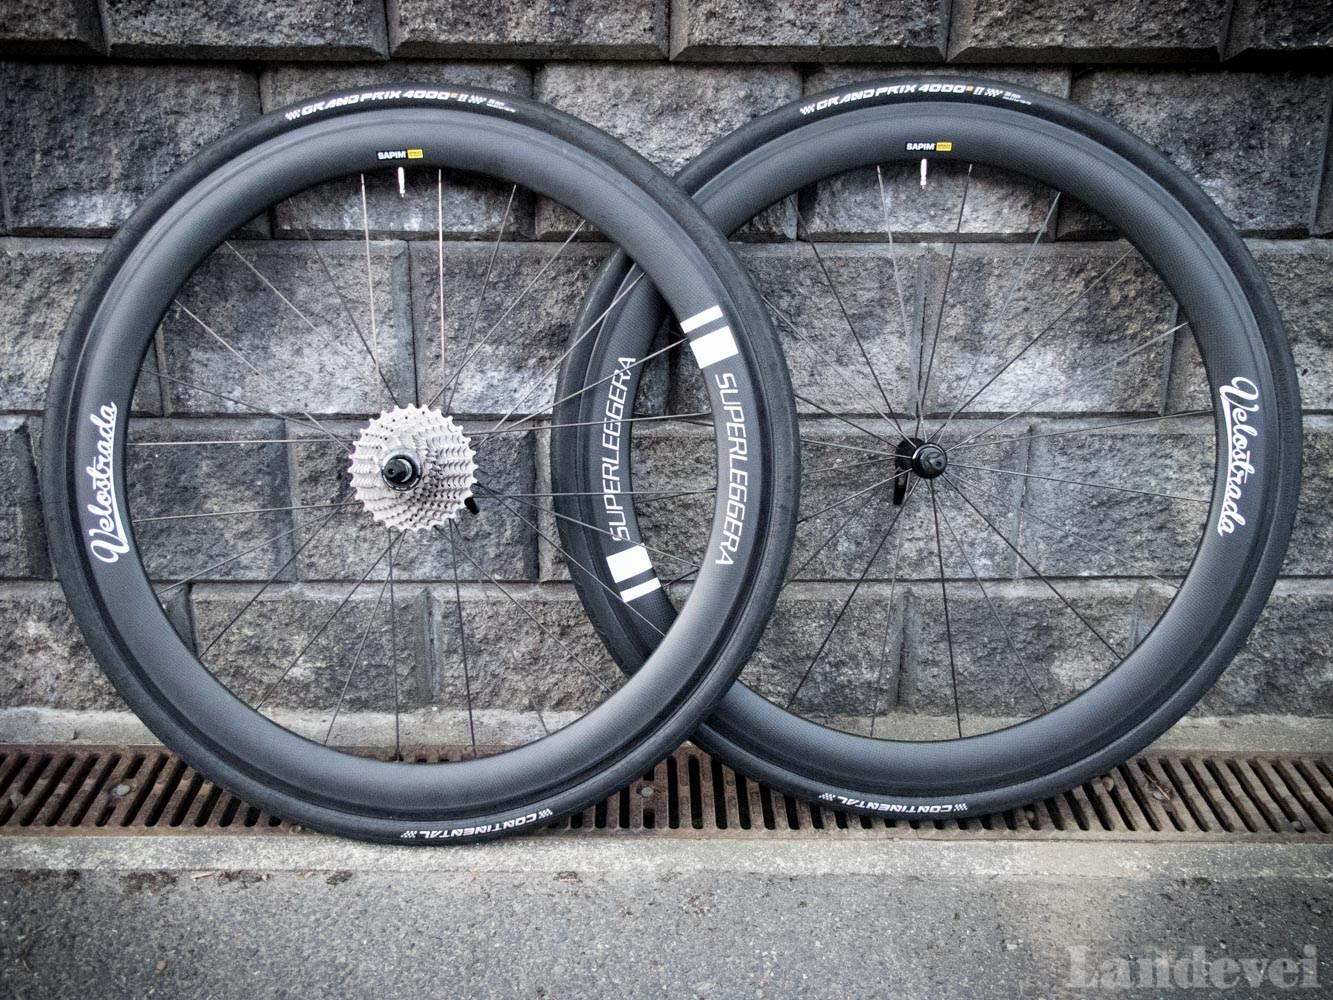 TEST: VELOSTRADA SUPERLEGGERA 50 MM